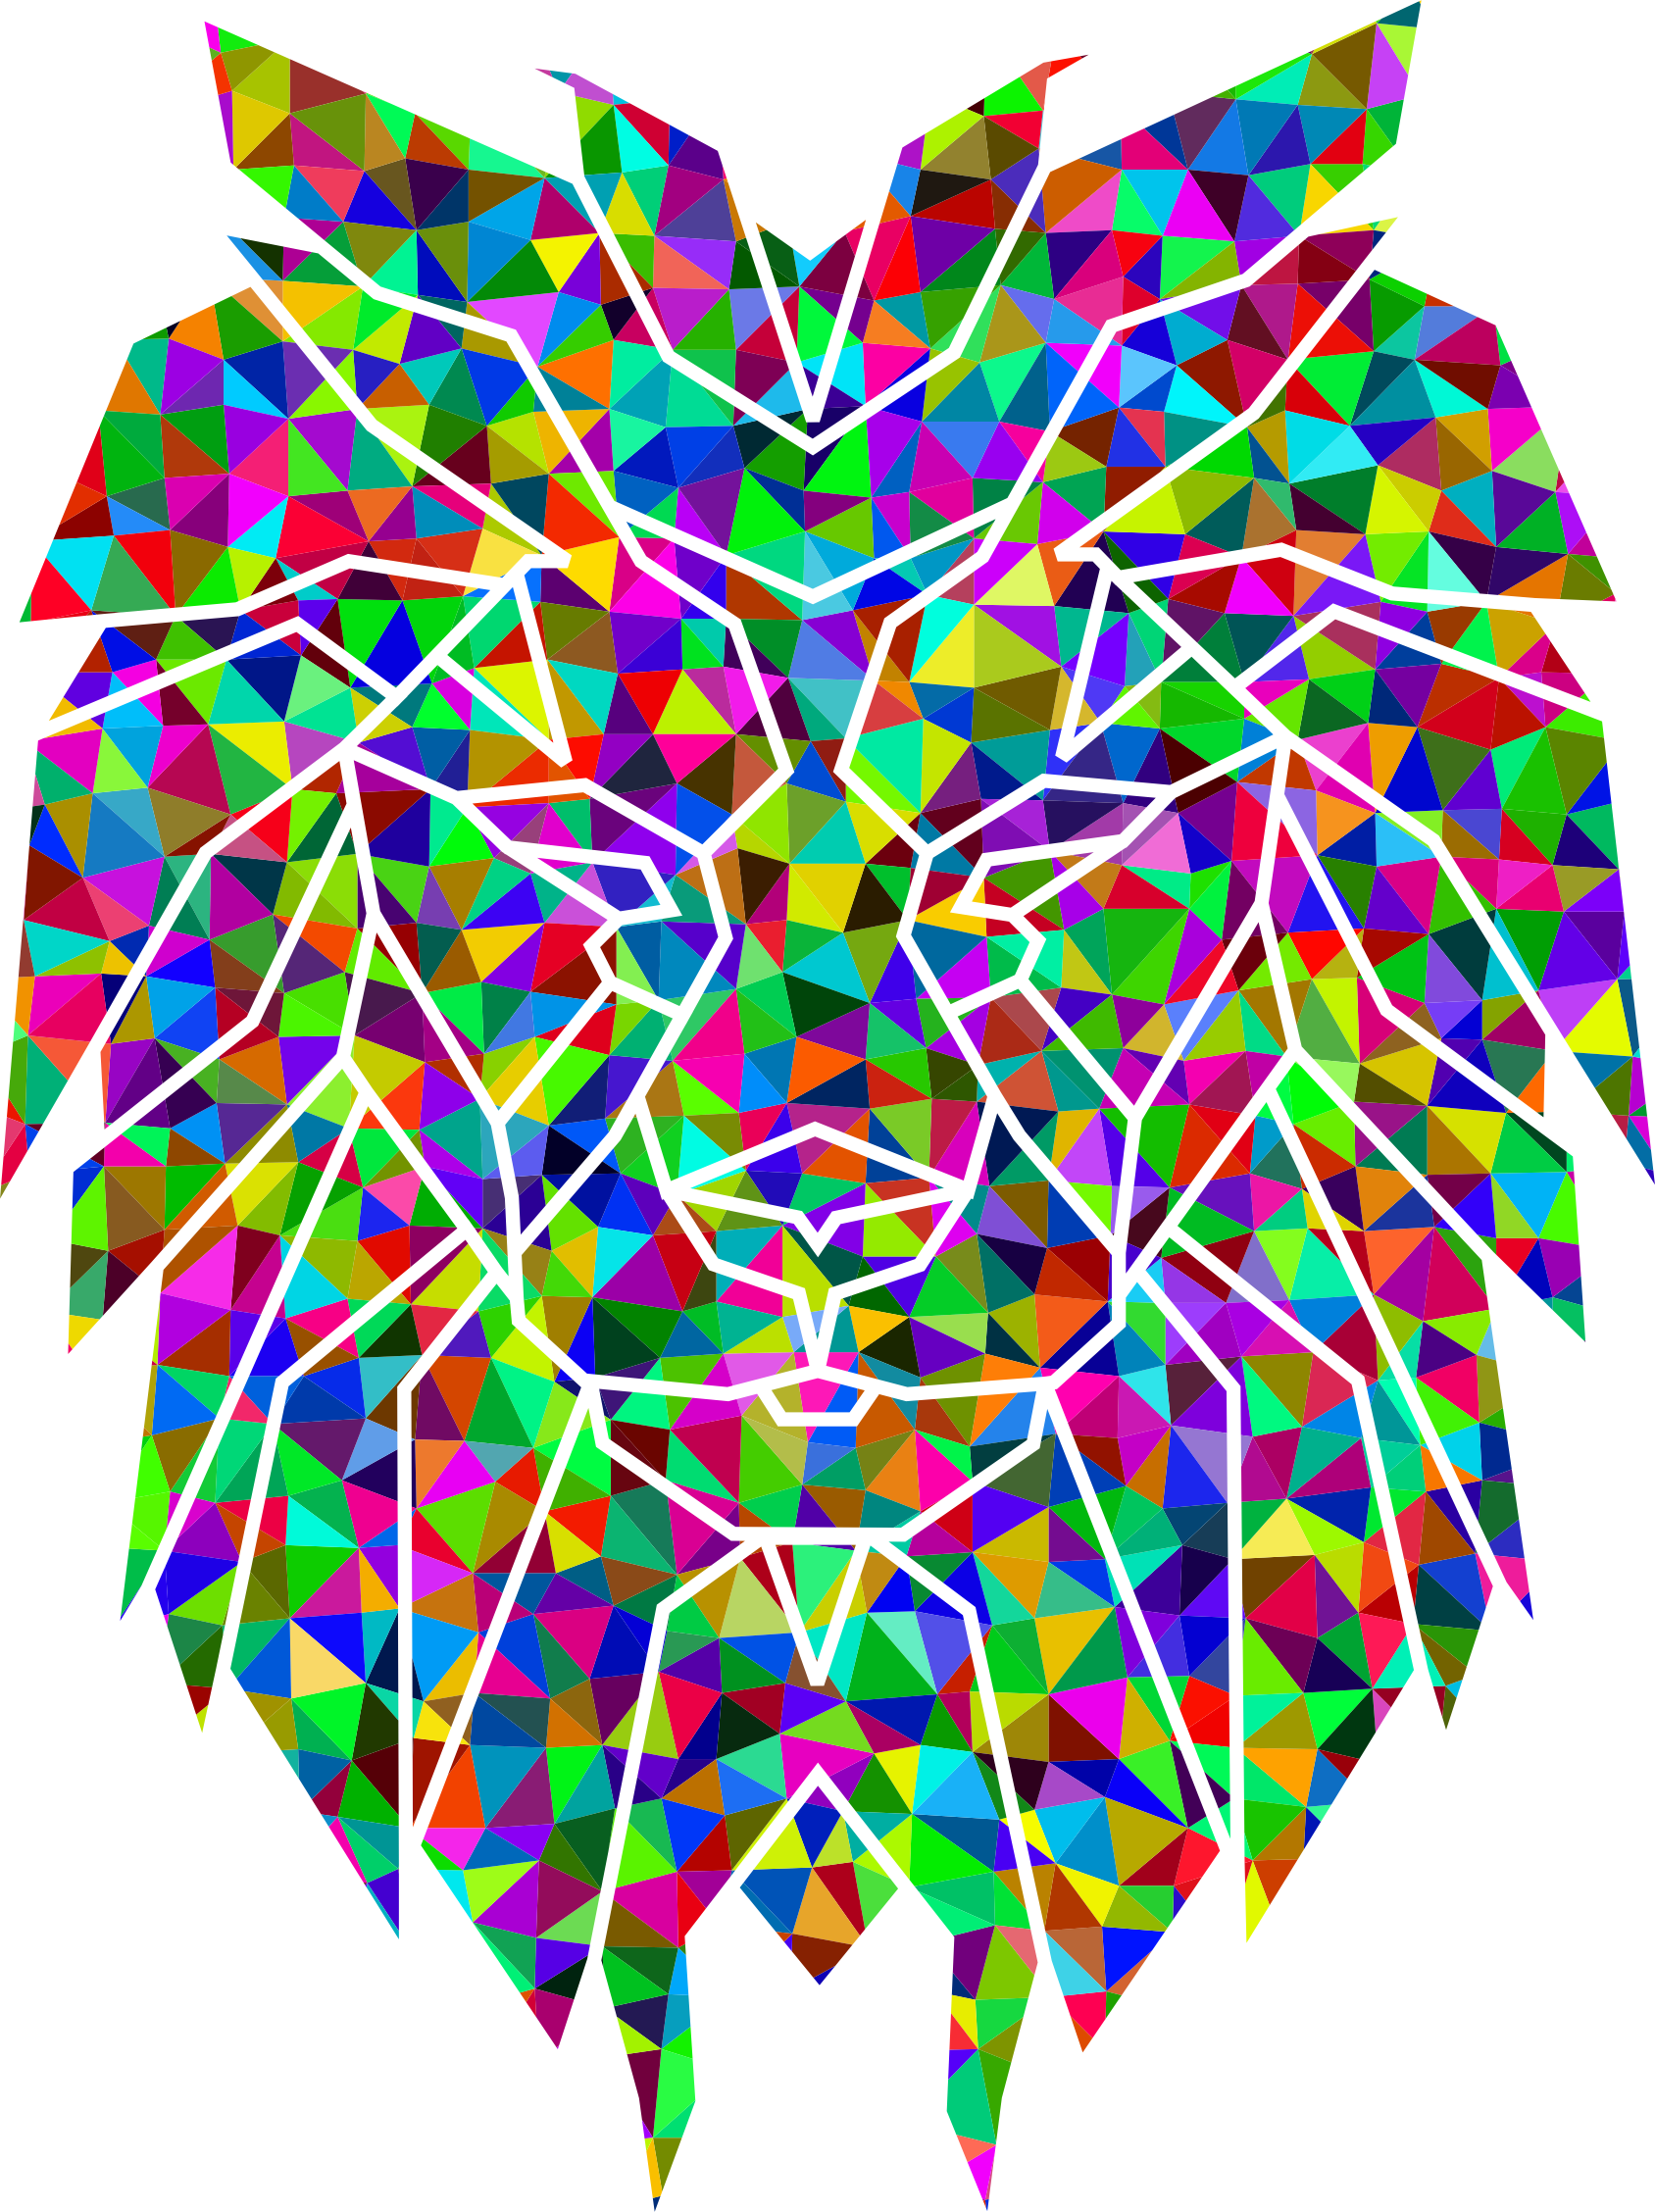 Prismatic Low Poly Polygonal Lion Face by GDJ